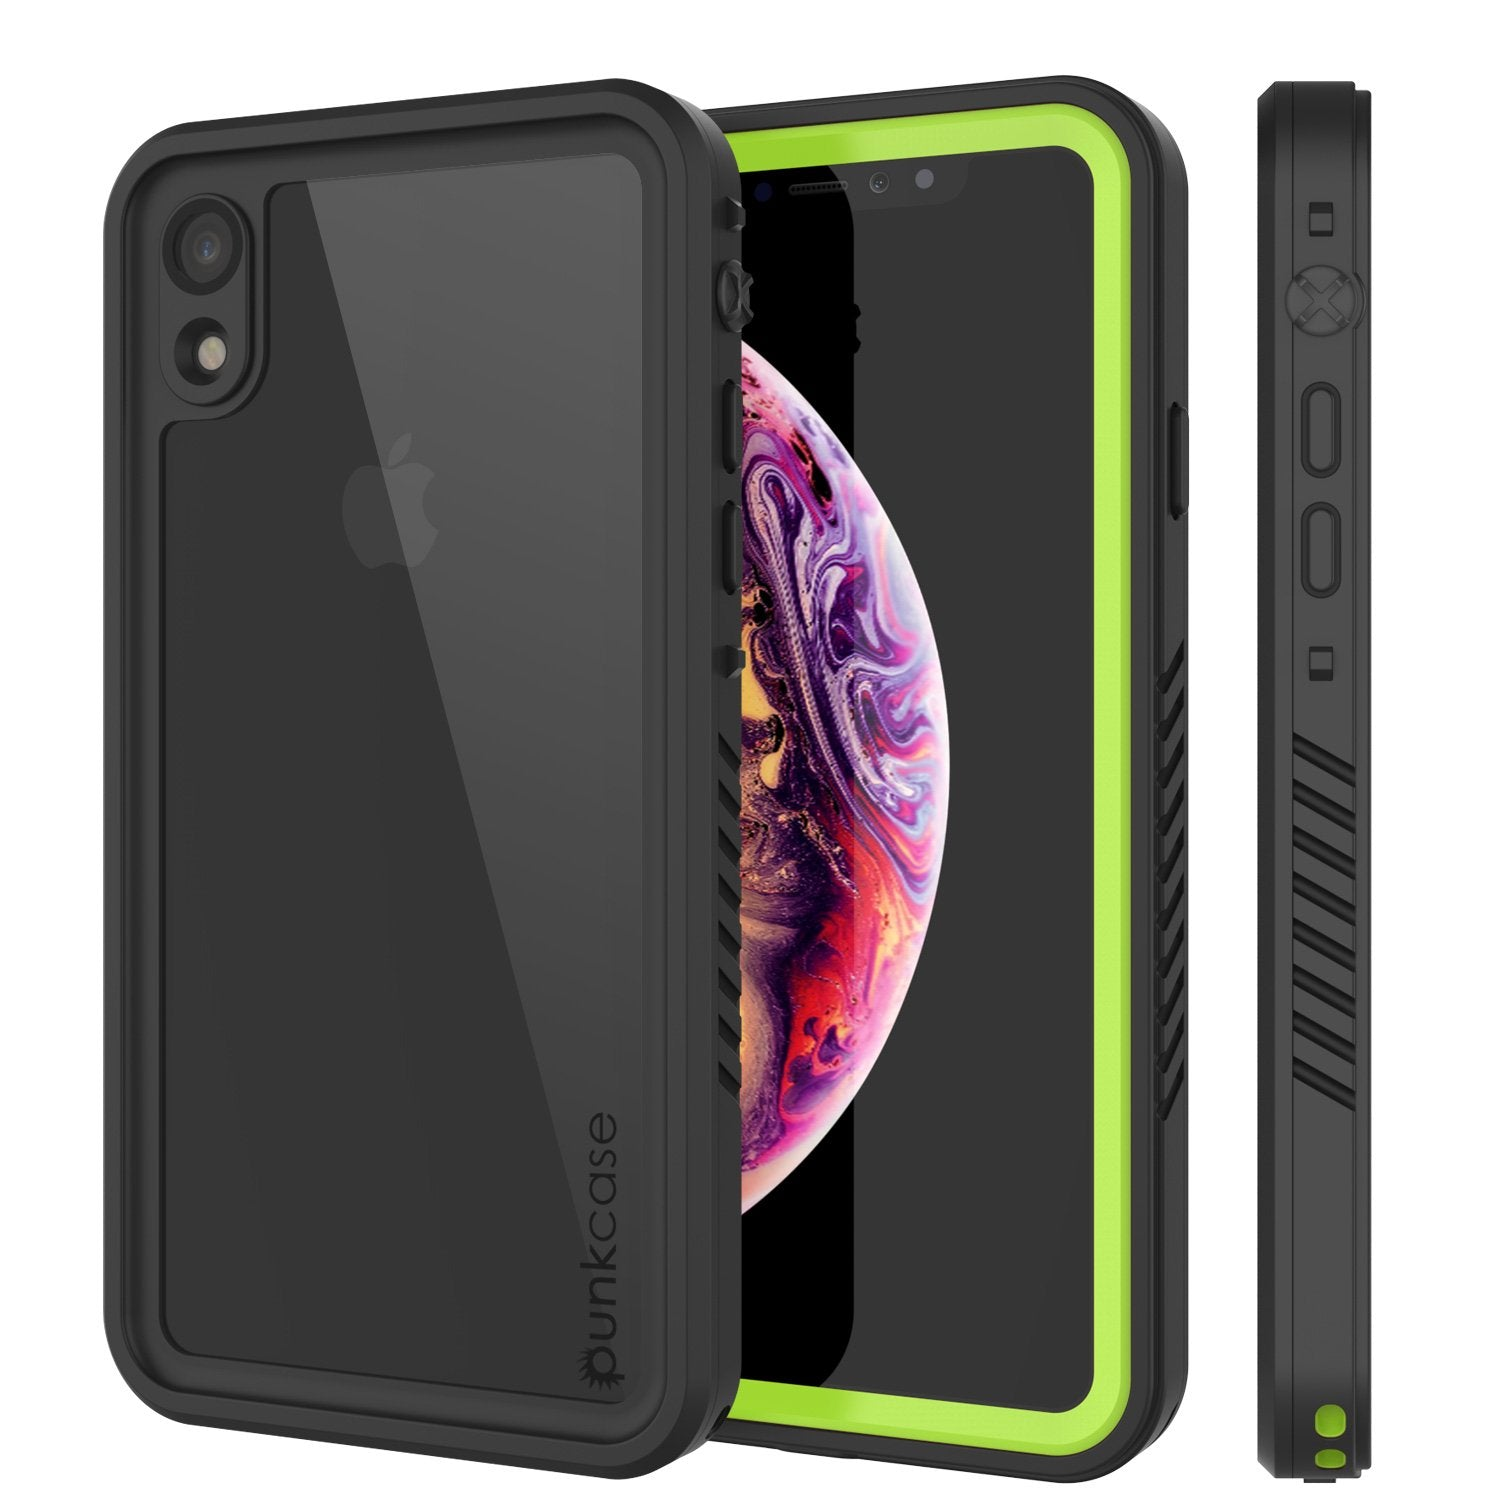 iPhone XR Waterproof Case, Punkcase [Extreme Series] Armor Cover W/ Built In Screen Protector [Light Green]